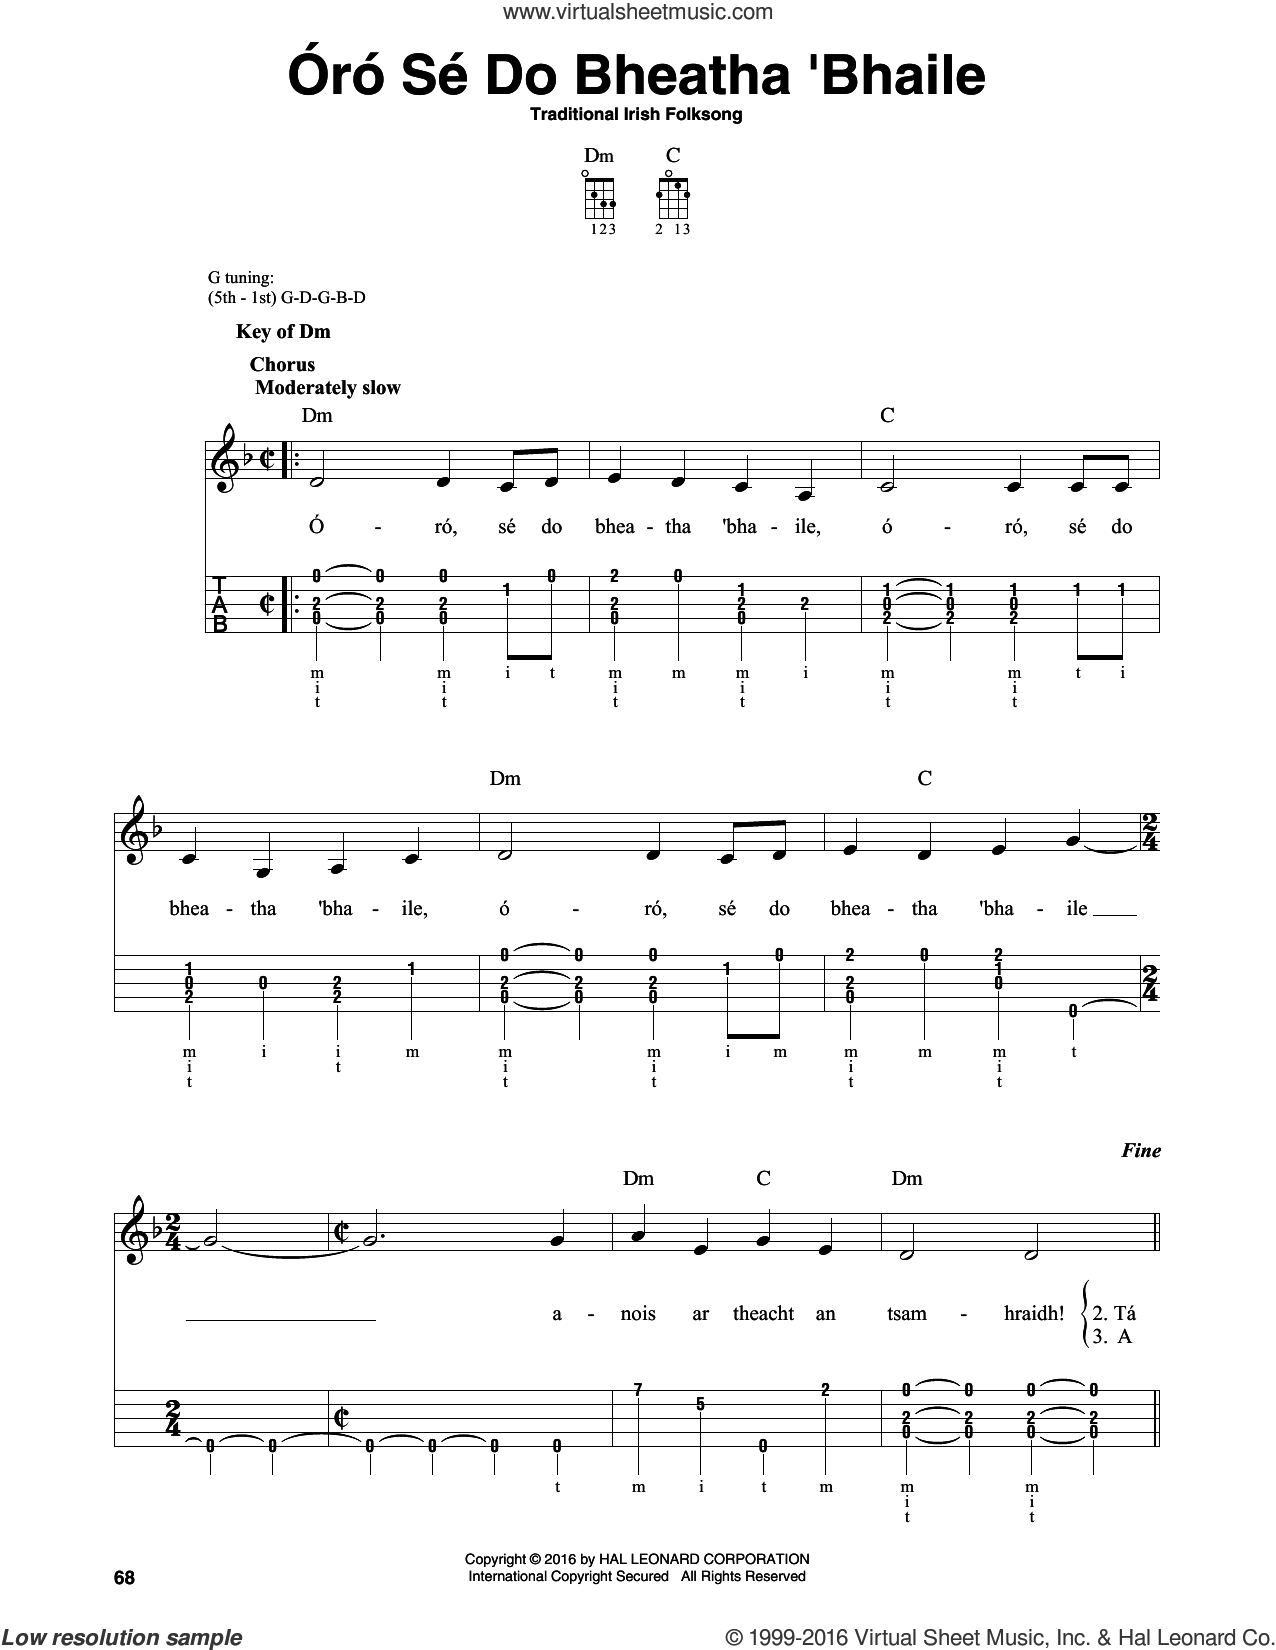 Oro Se Do Bheatha Bhaile sheet music for banjo solo. Score Image Preview.